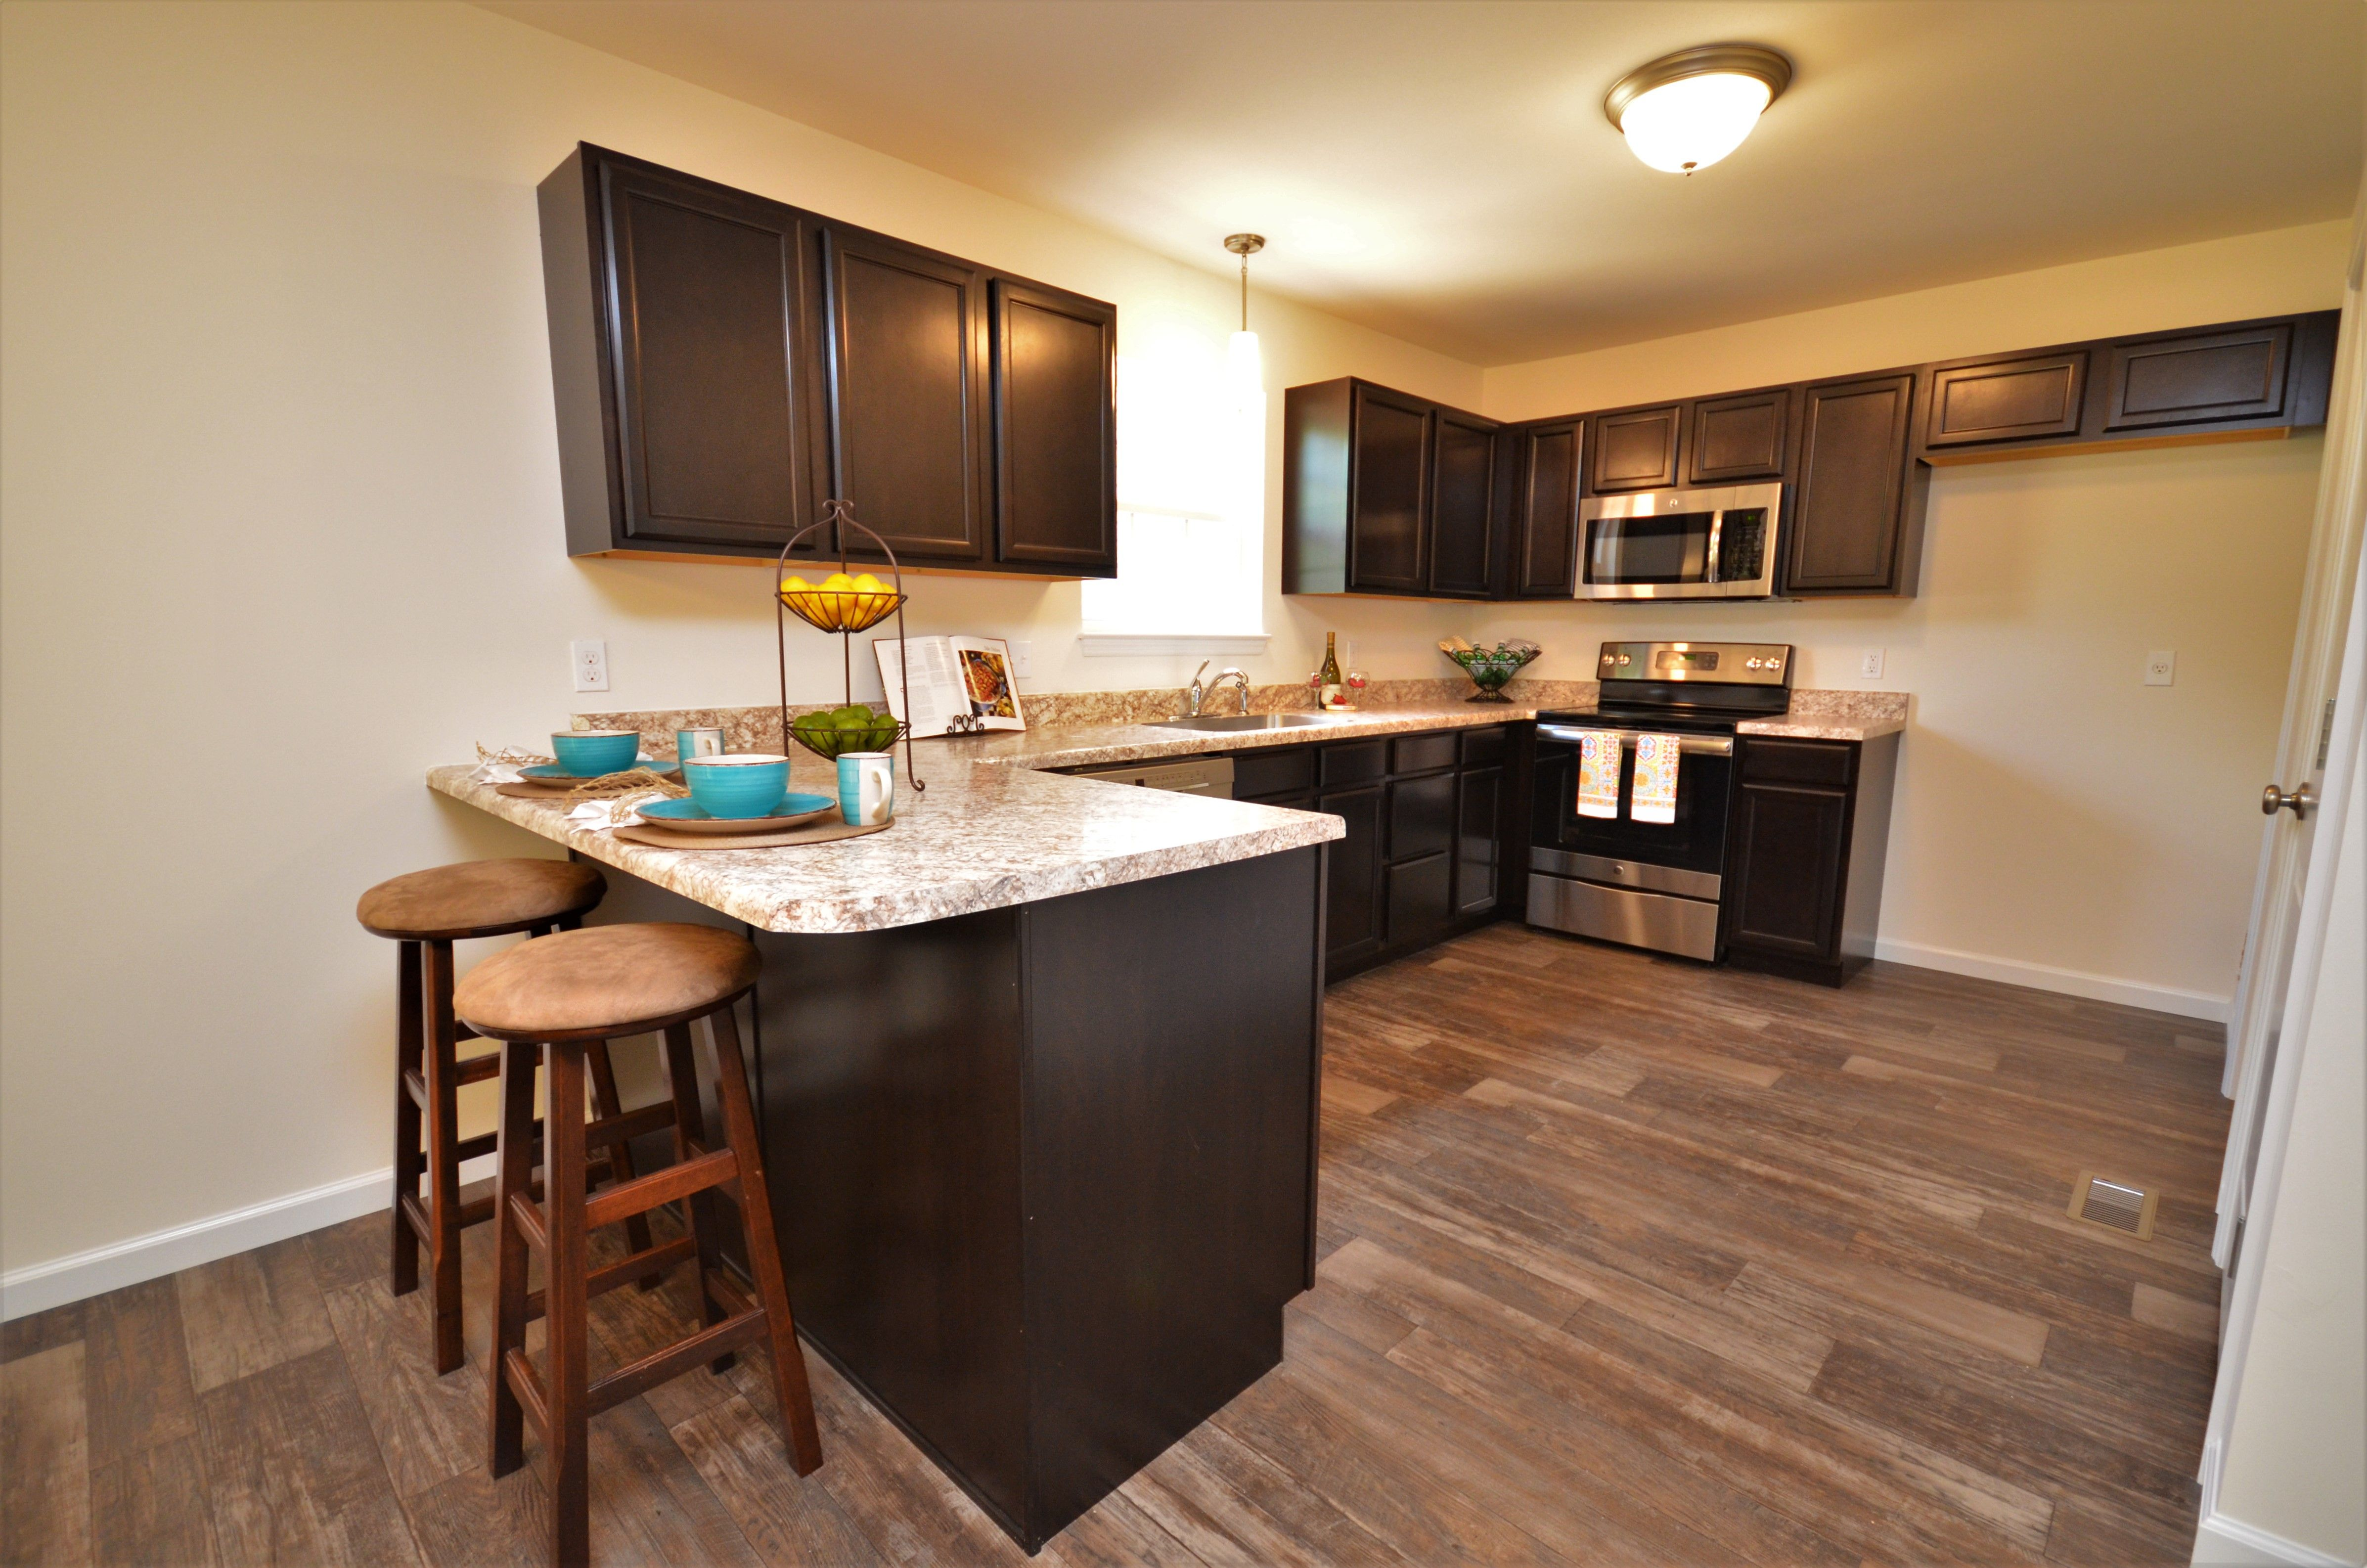 Kitchen featured in The Piedmont By Cannon Builders, Inc.  in St. Louis, MO